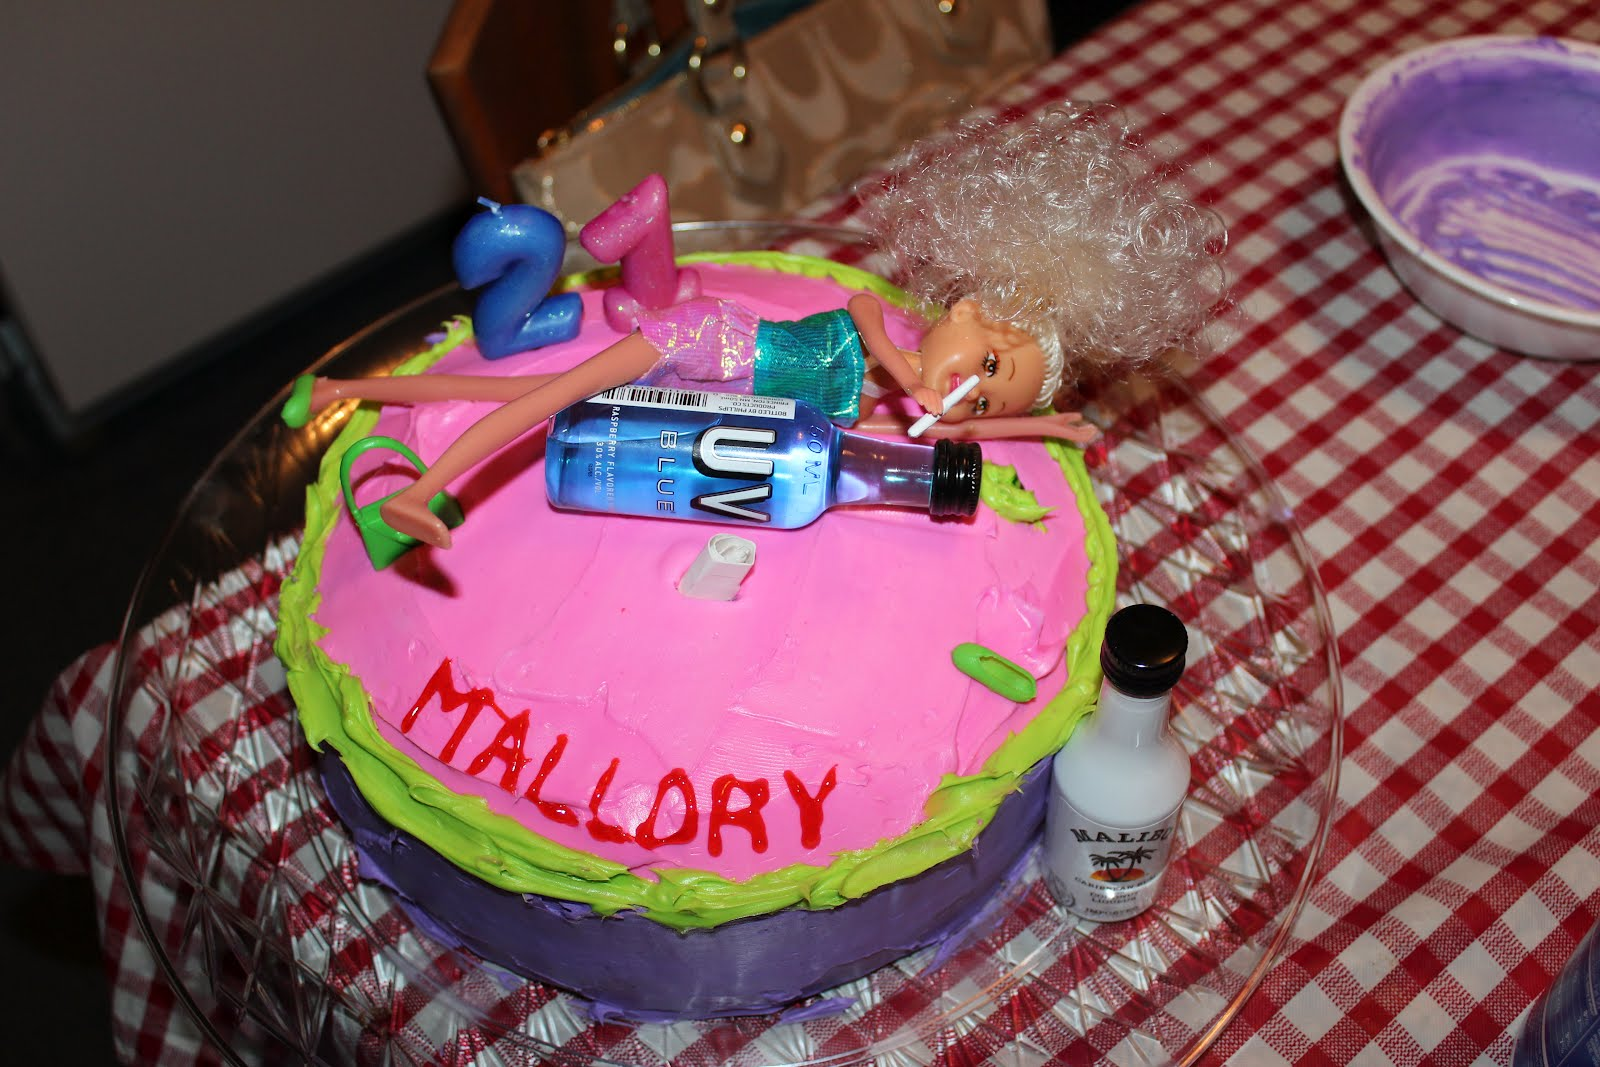 imperfection barbie Family owned and operated specialty cake shoppe and neighborhood retail bake shoppe we have all of your favorite treats.